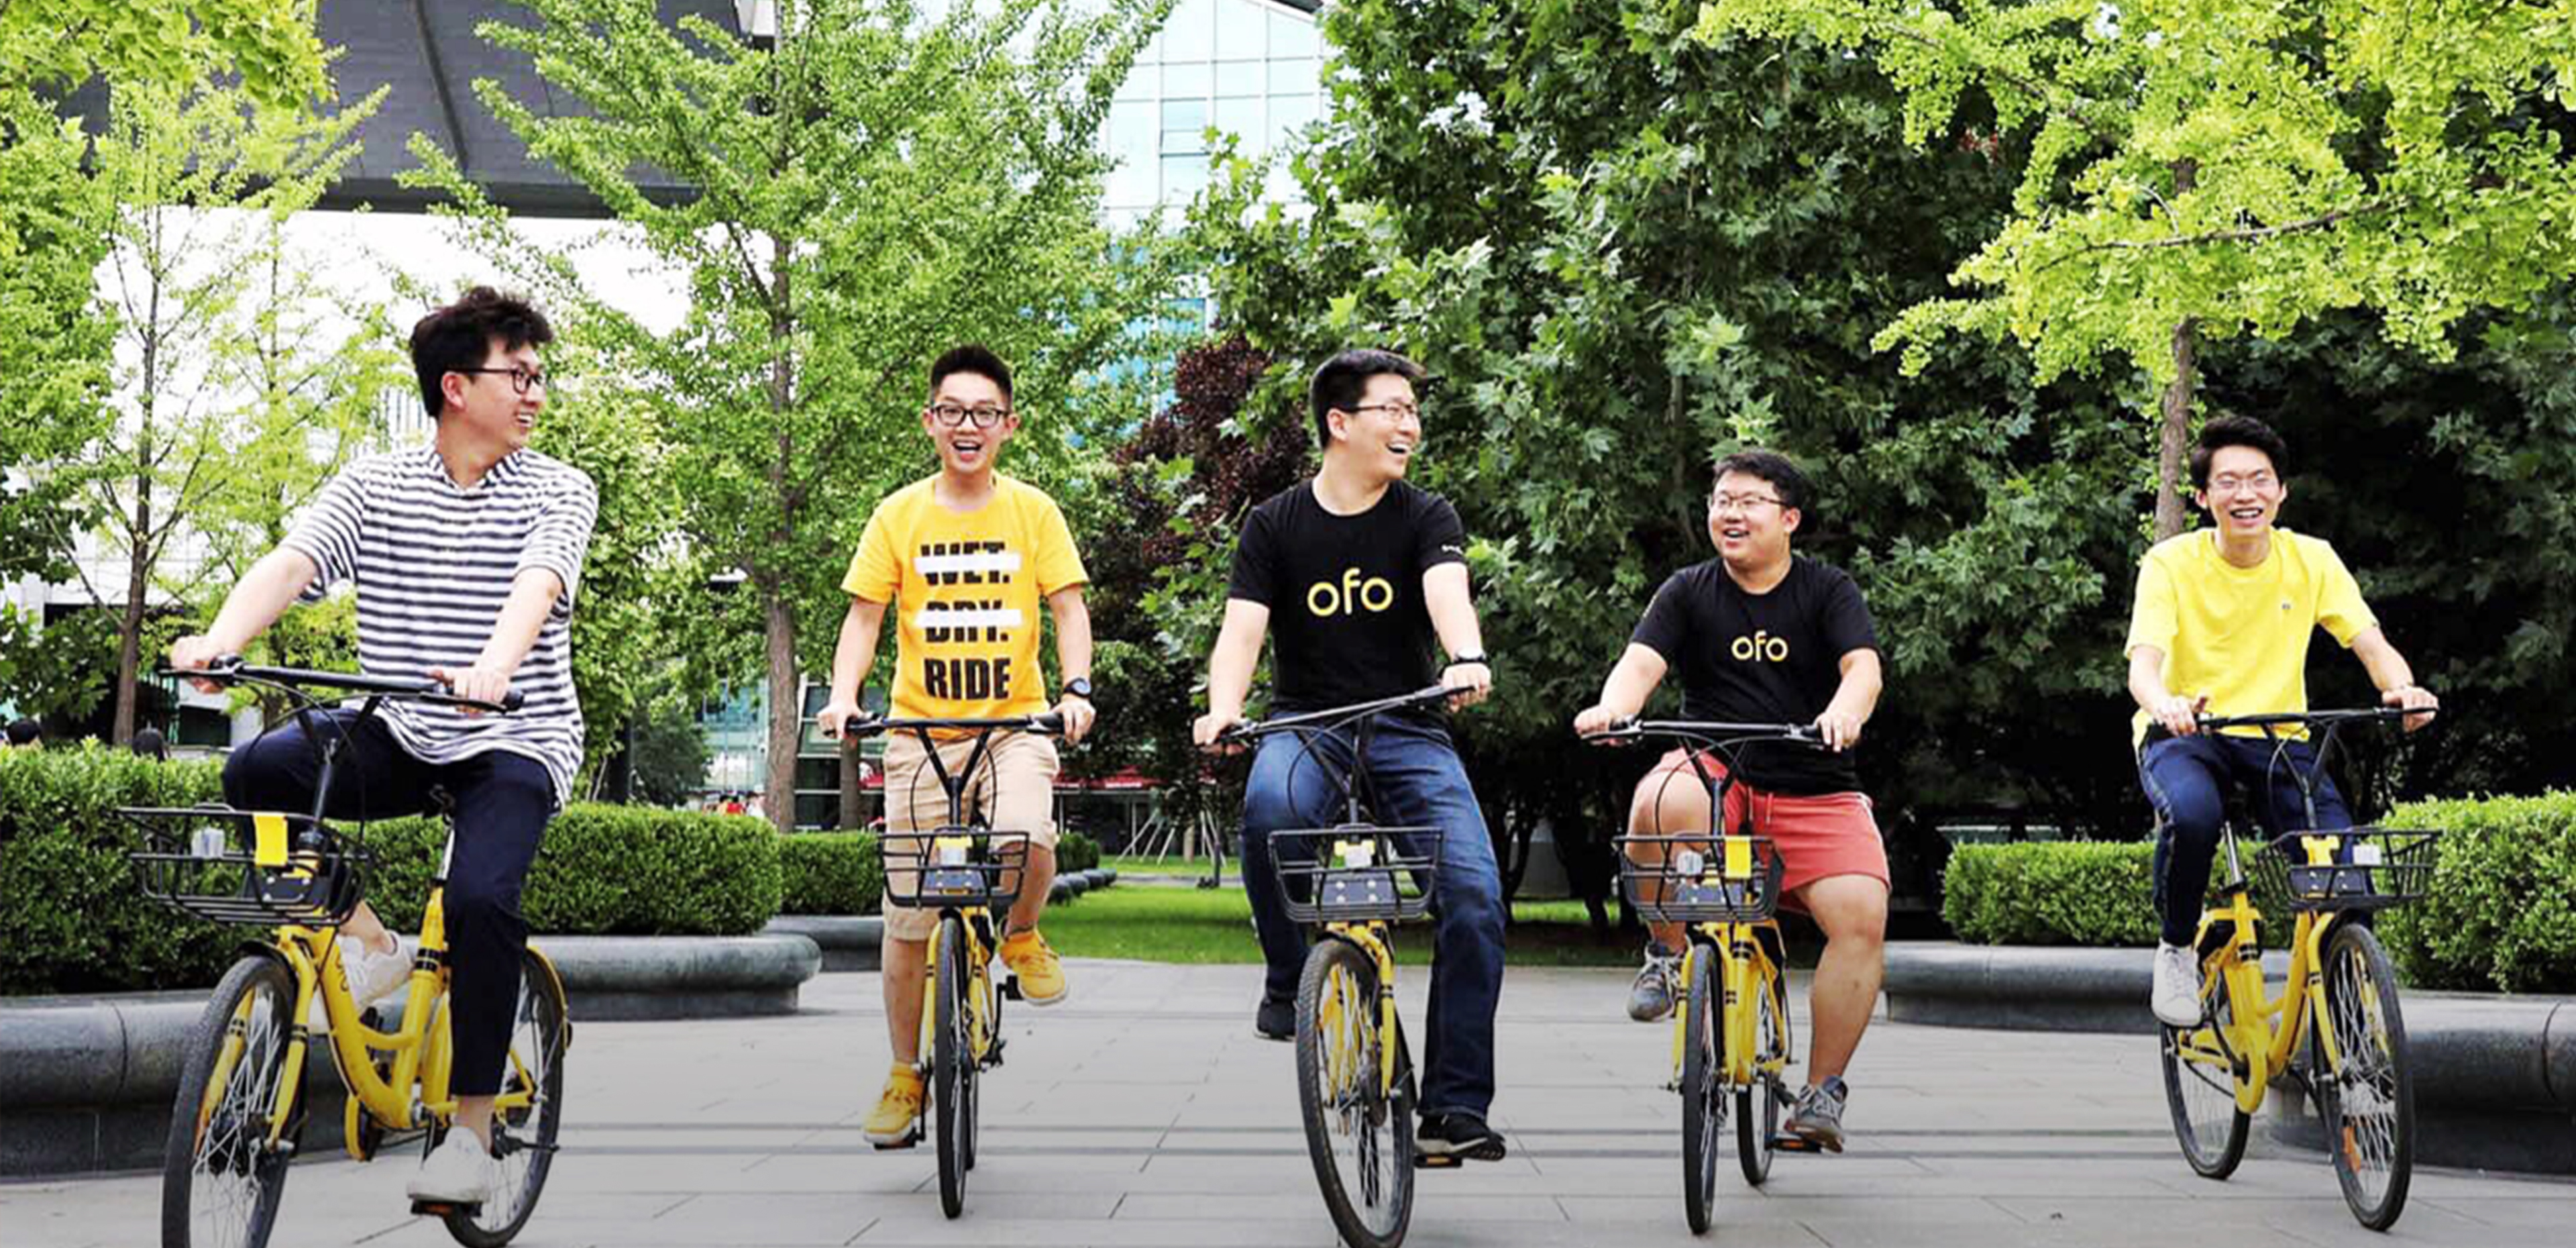 Dai Wei and his Ofo: Fighting till the last act?